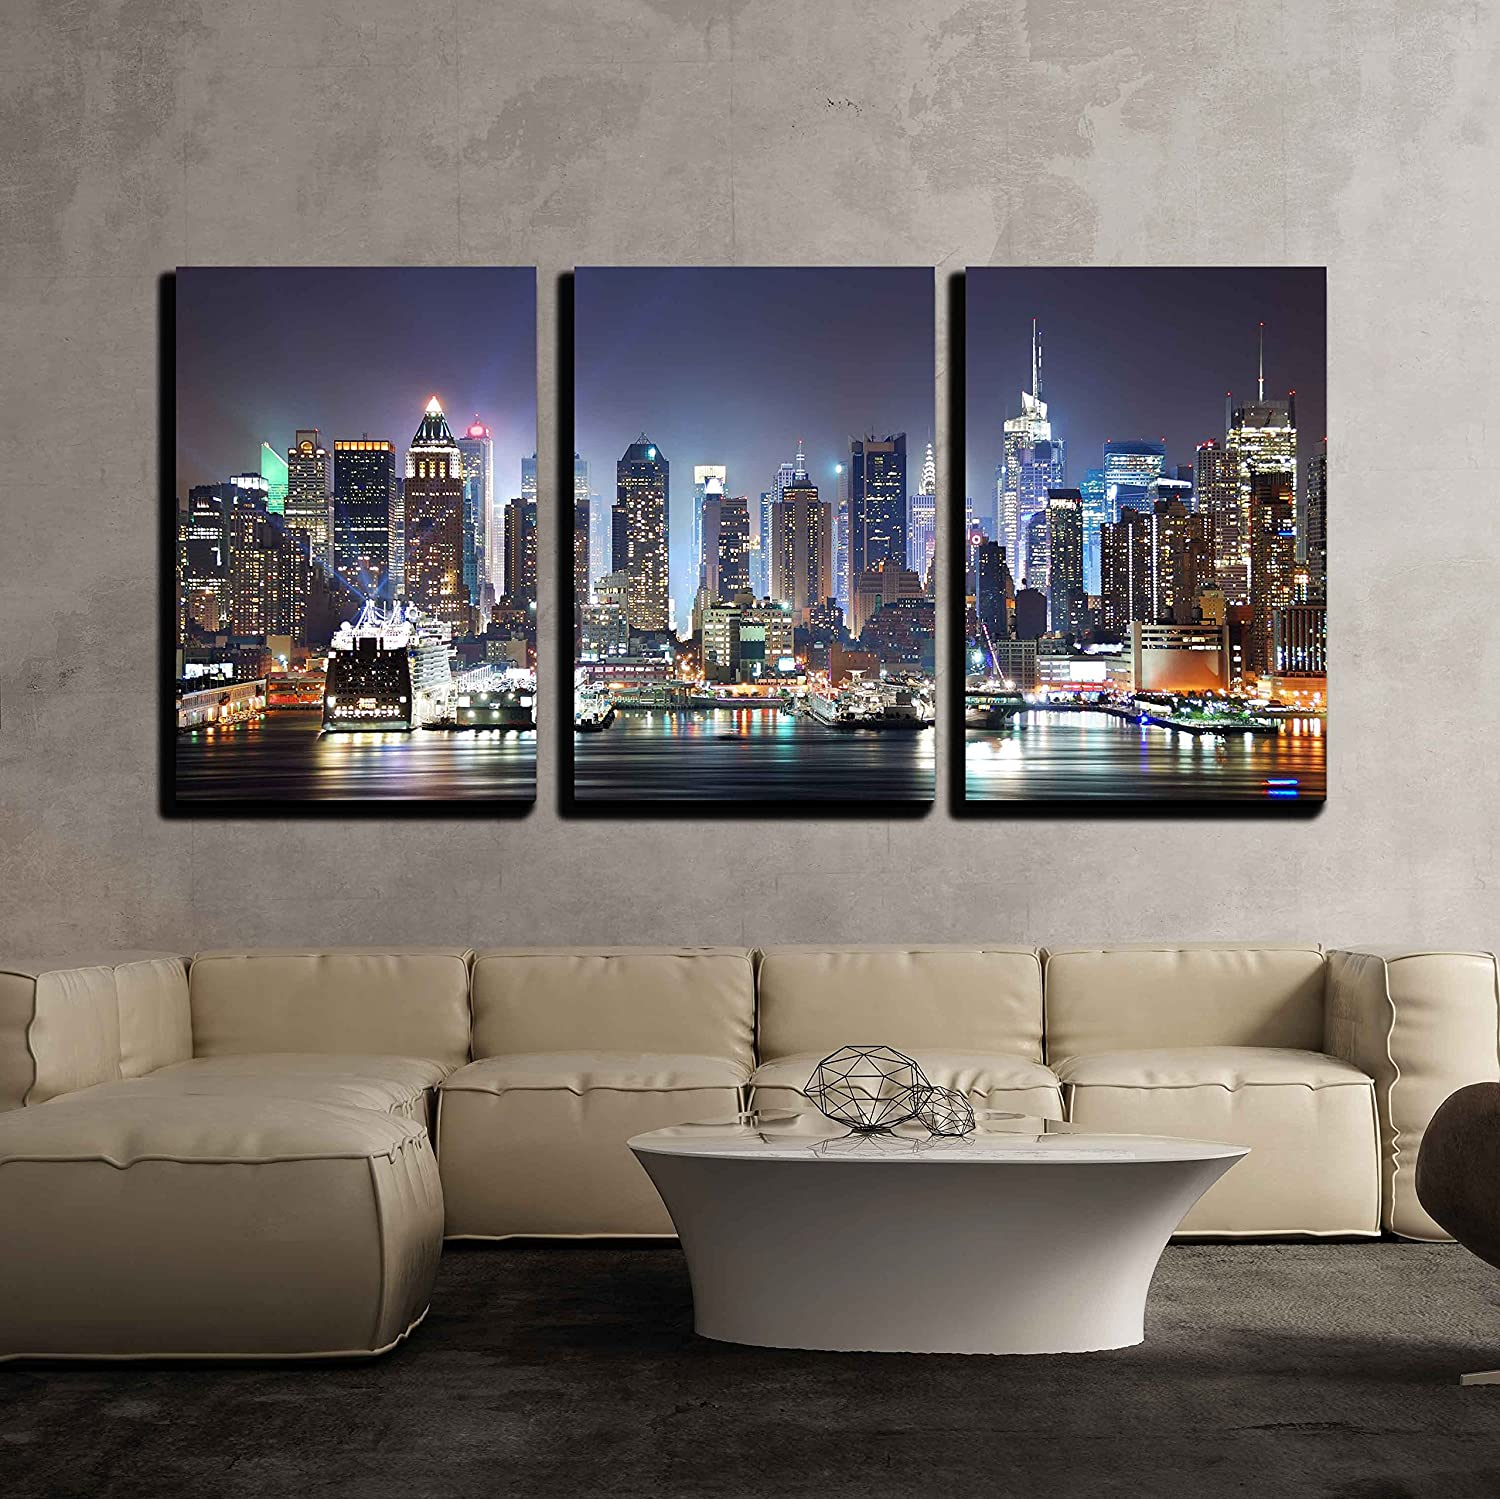 Amazon Com Wall26 3 Piece Canvas Wall Art New York City Manhattan Skyline Panorama At Night Modern Home Art Stretched And Framed Ready To Hang 16 X24 X3 Panels Home Kitchen